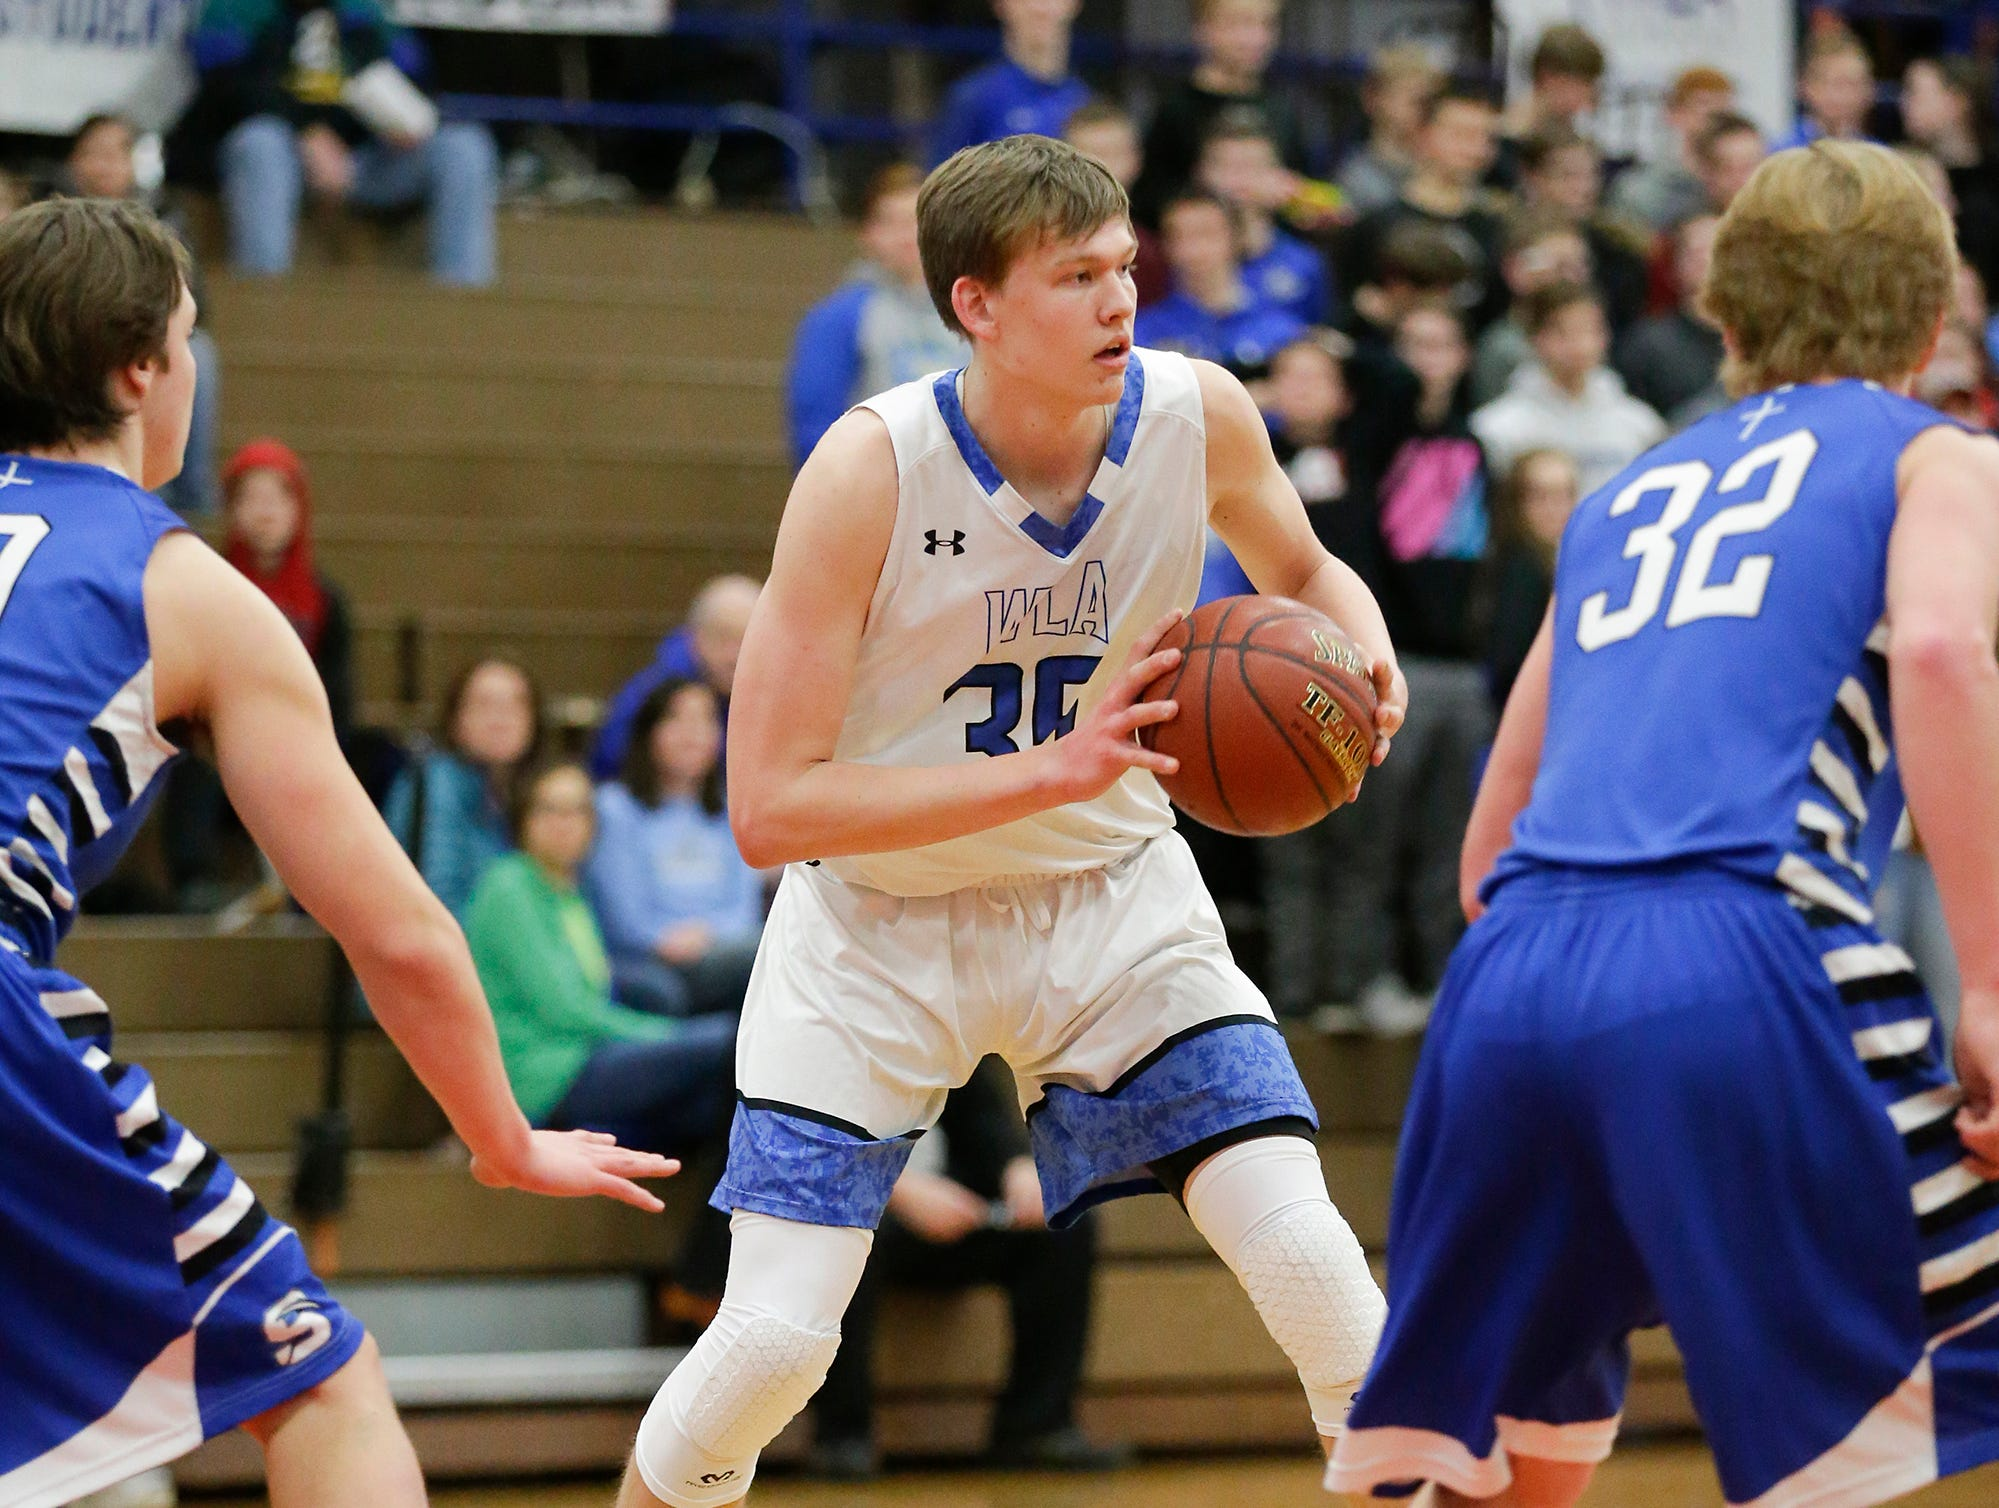 Winnebago Lutheran Academy boys basketball's Gabe Pruss looks to pass against St. Mary's Springs Academy Tuesday, January 8, 2019 during their game in Fond du Lac. Winnebago Lutheran Academy won the game 69-66. Doug Raflik/USA TODAY NETWORK-Wisconsin